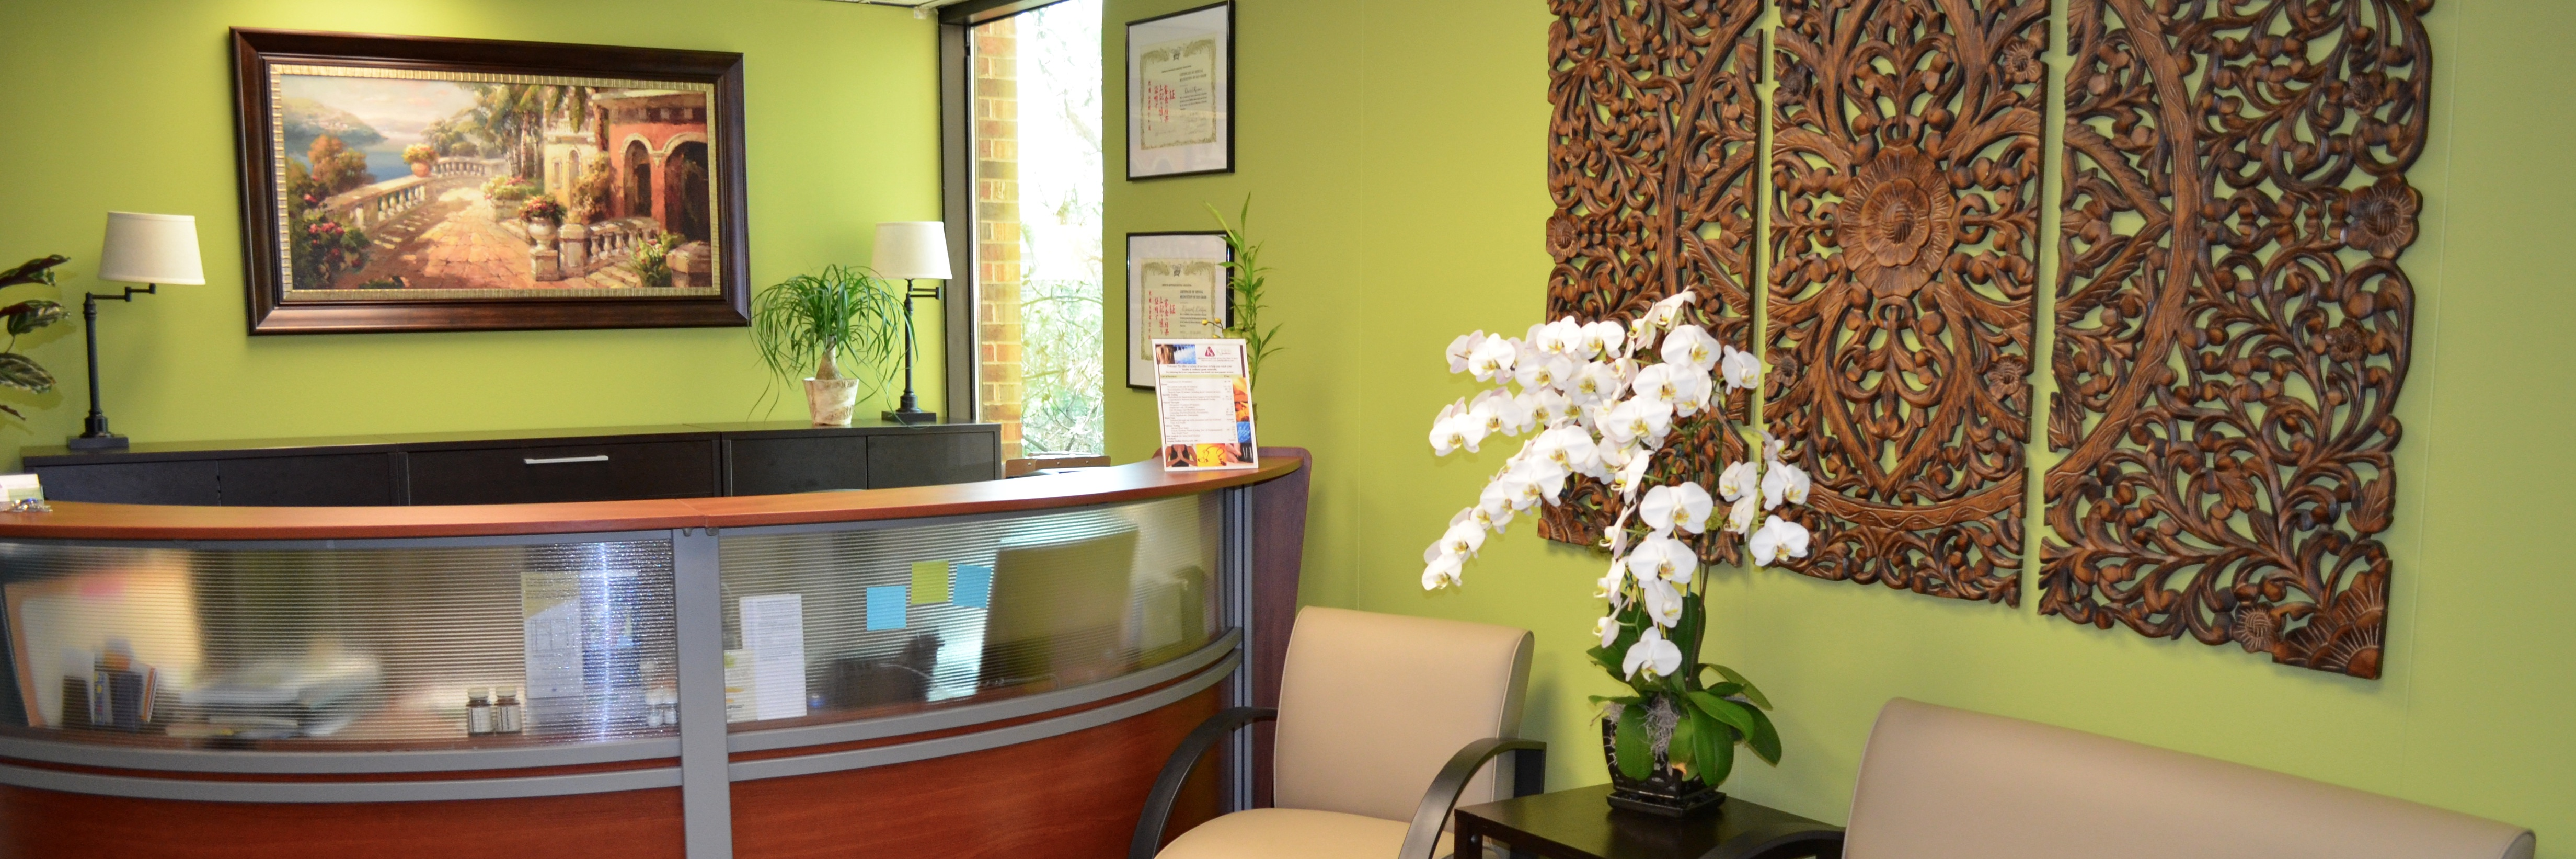 Glen Ellyn chiropractic and acupuncture reception room